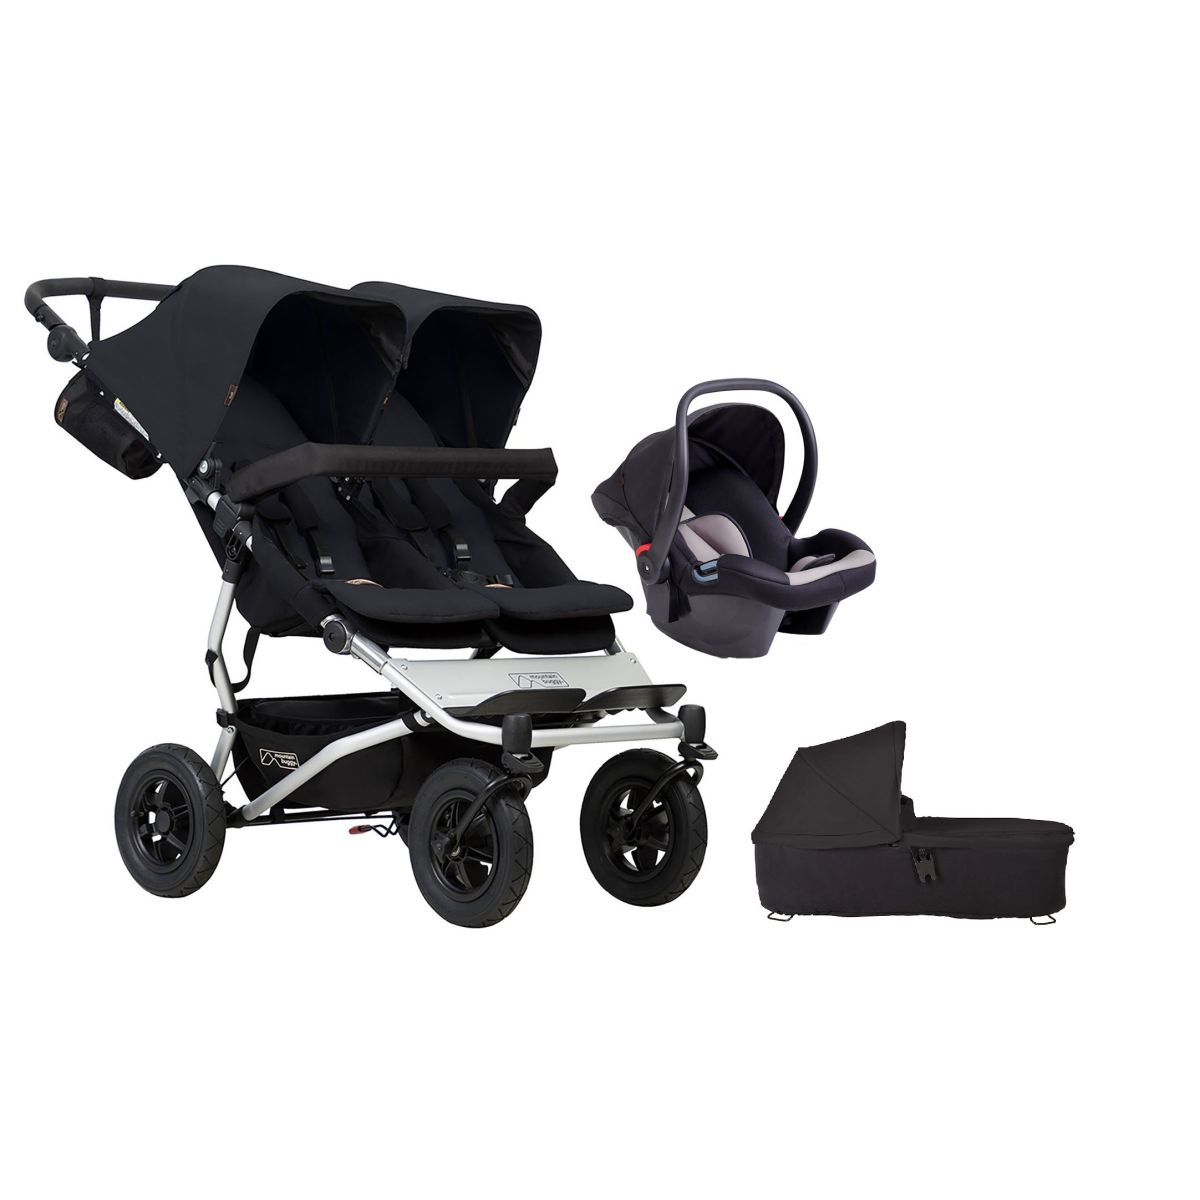 Mountain Buggy Duet V3 Travel System & Carrycot (Black)